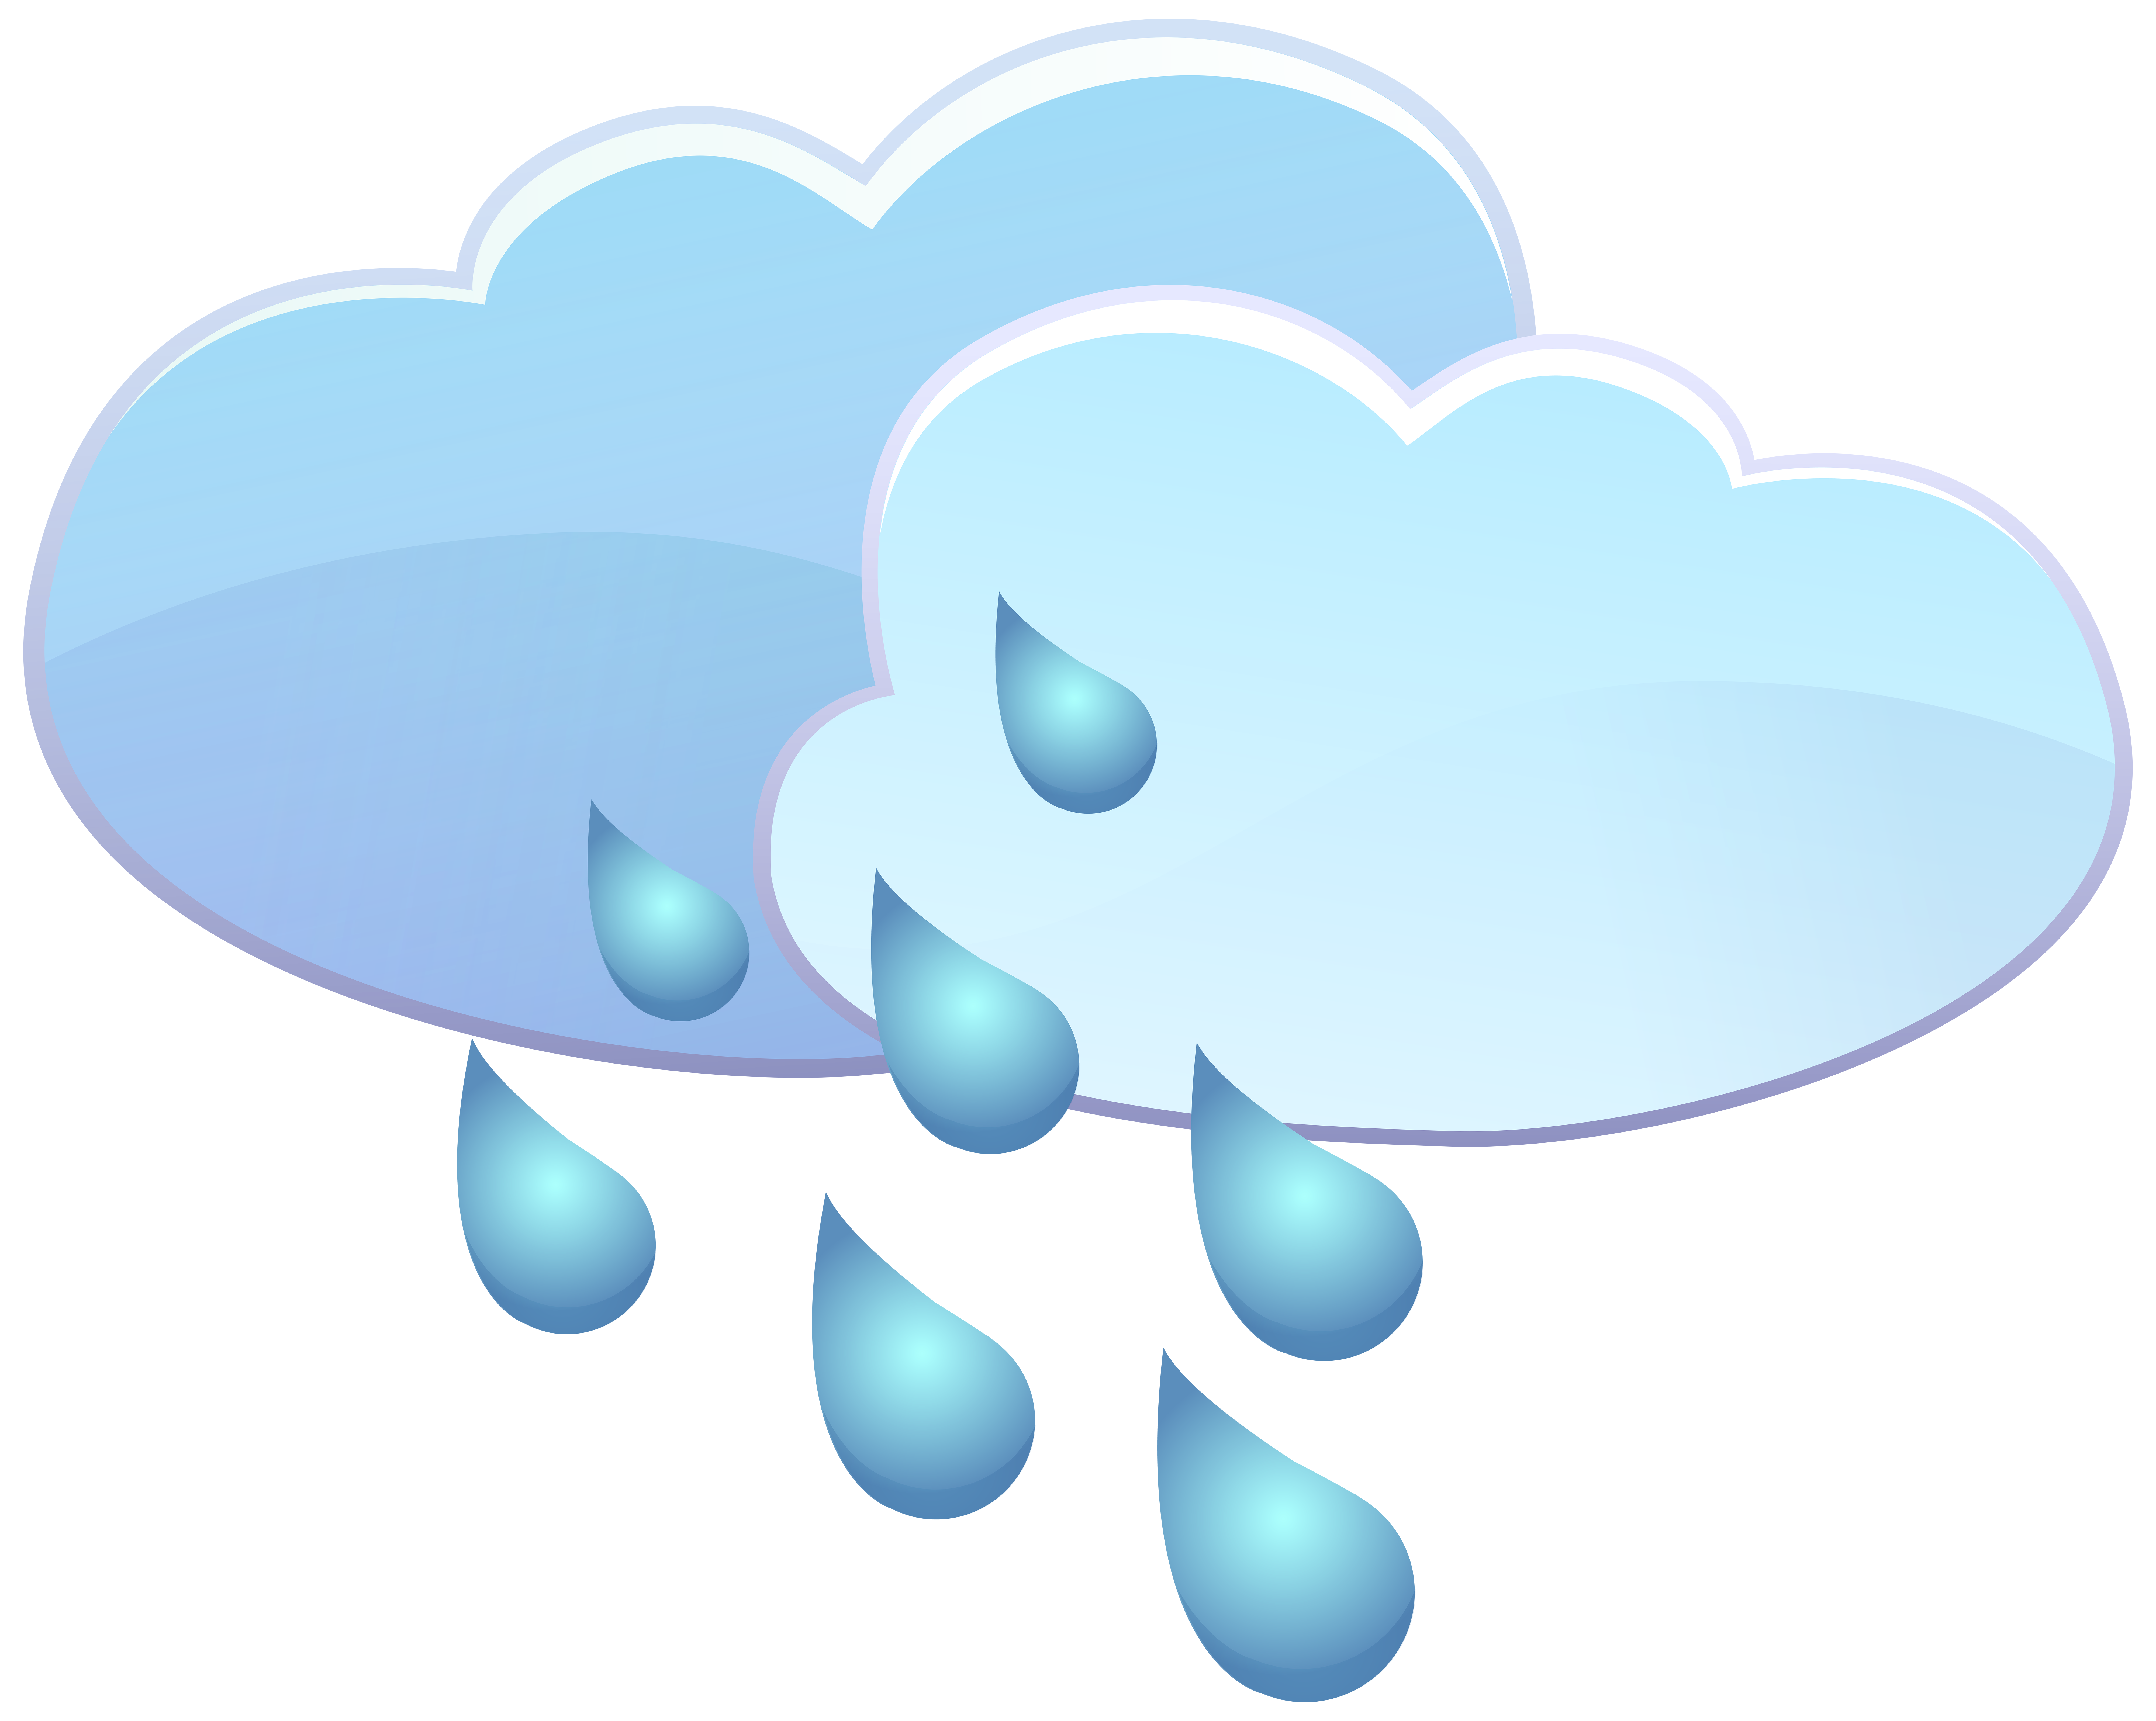 Rain clipart icon. Clouds and drops weather